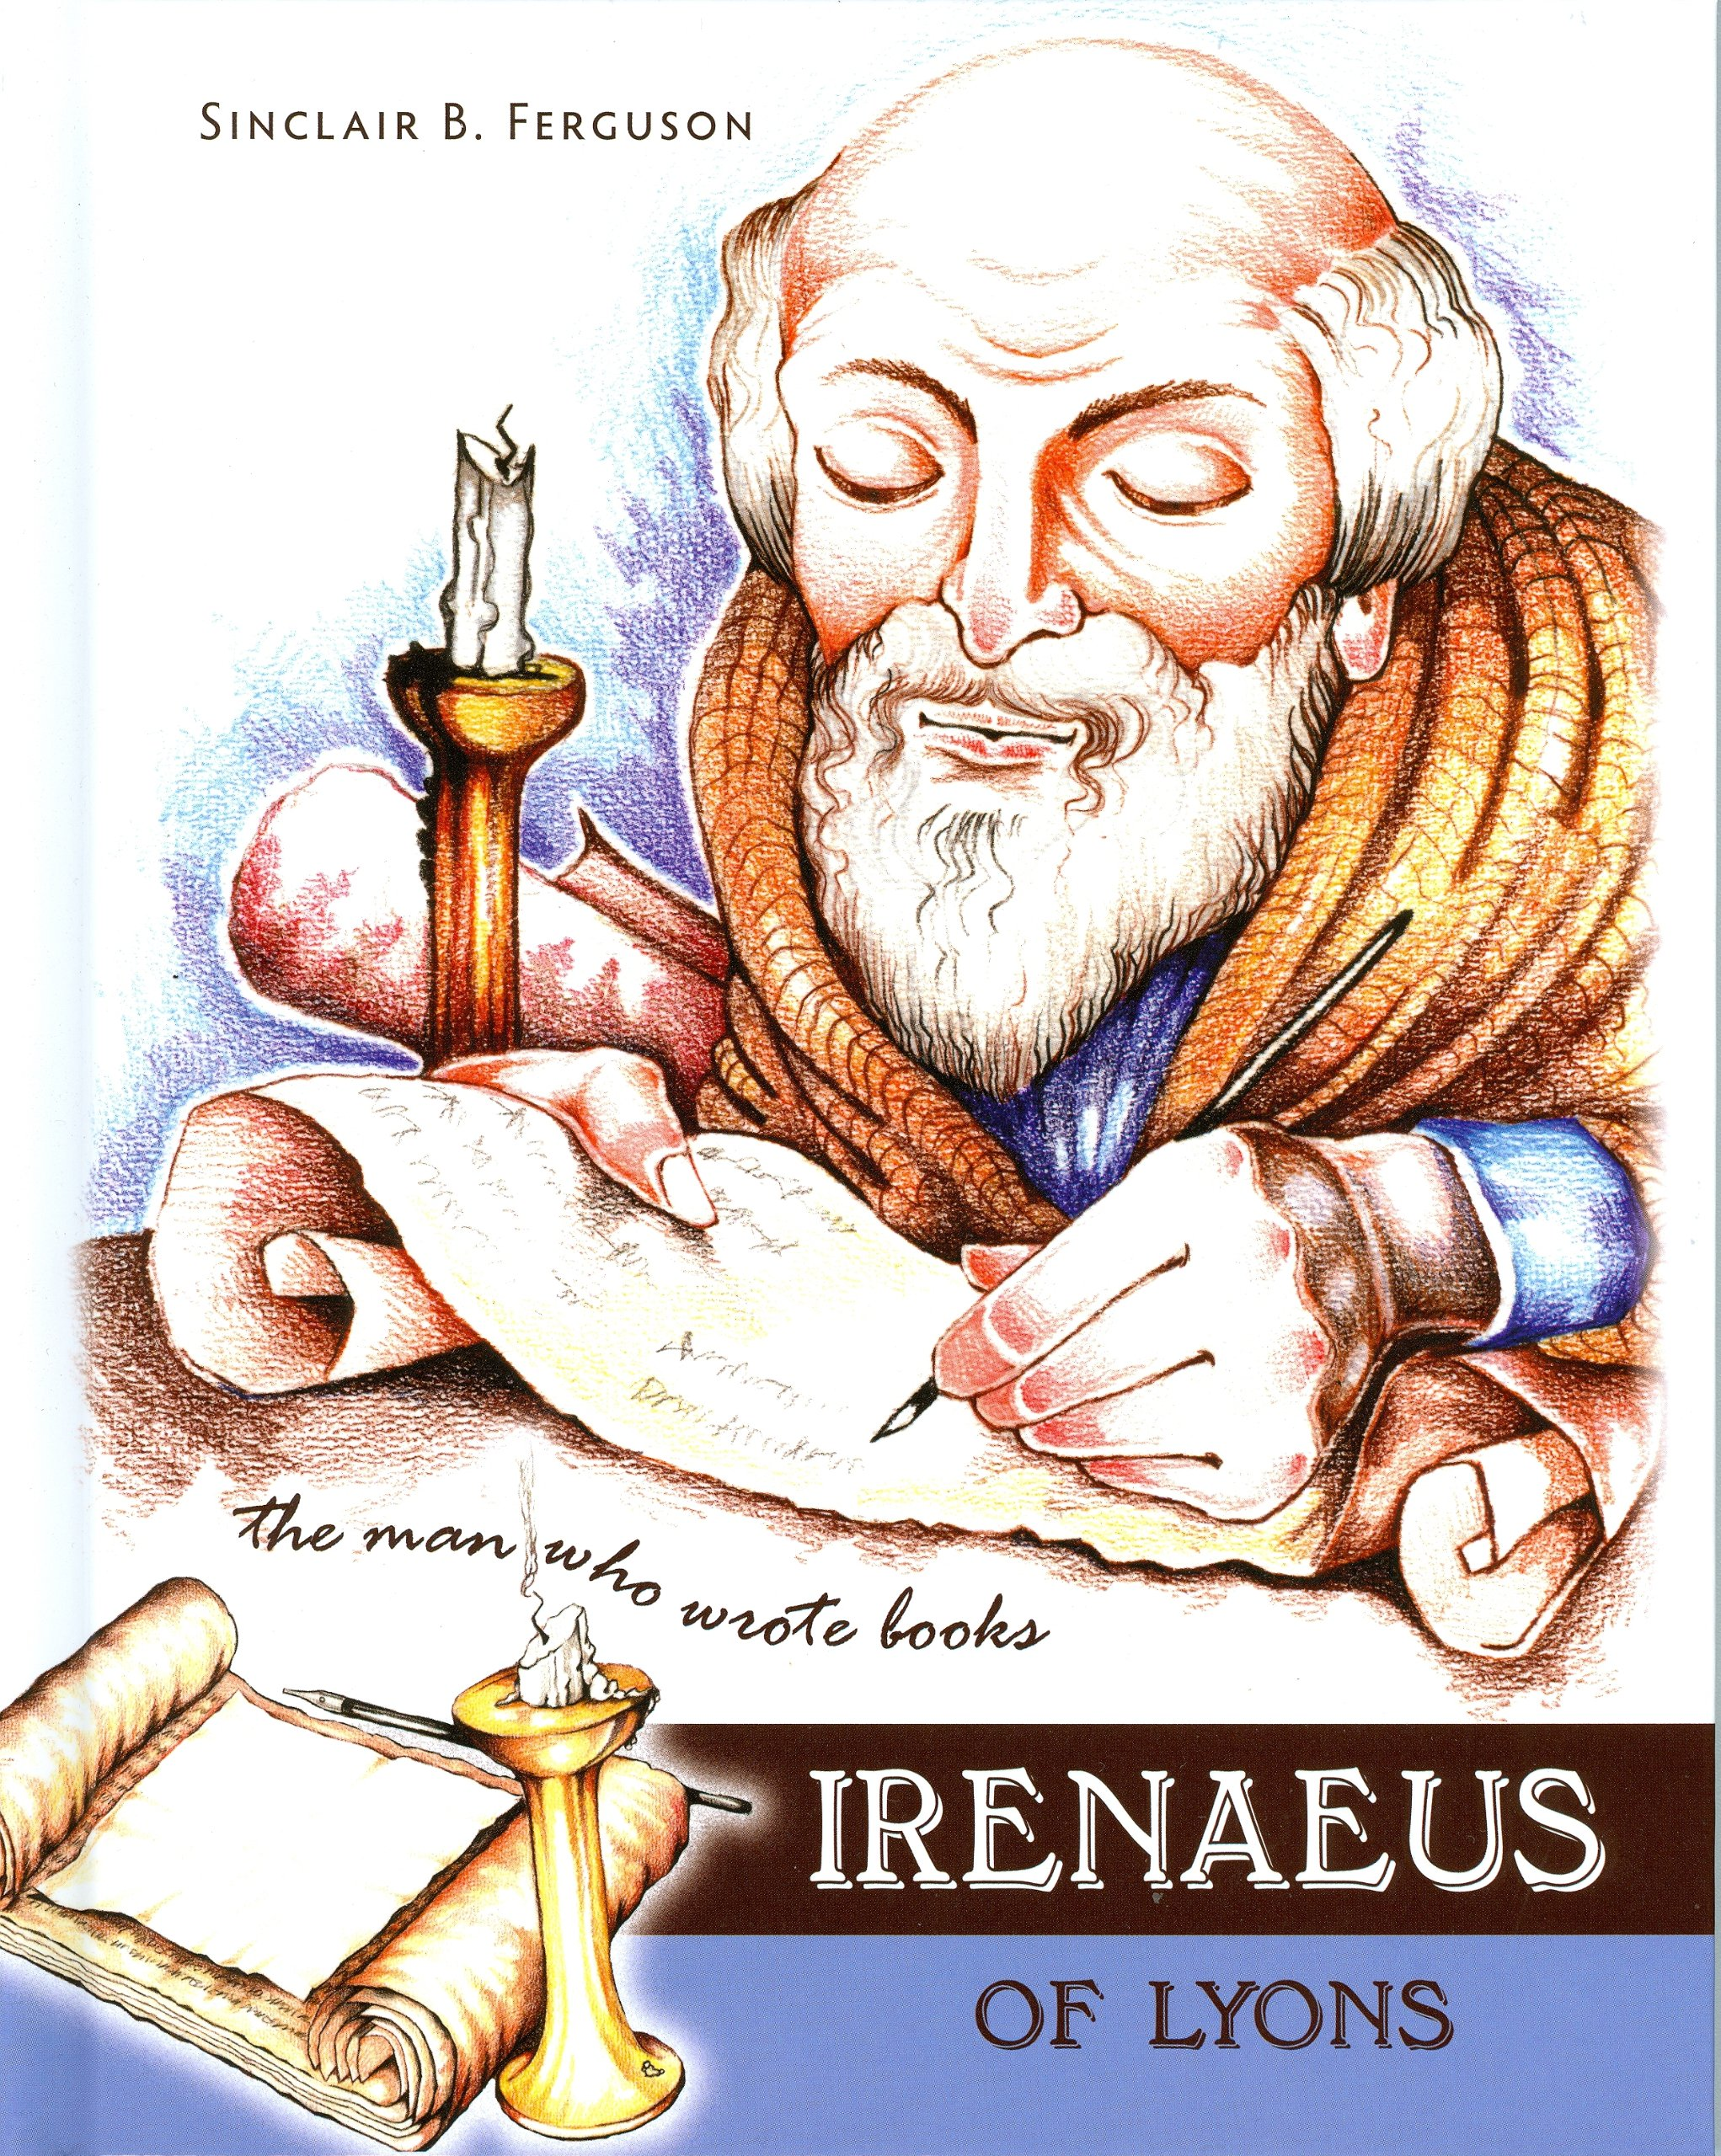 Irenaeus of Lyons (Heroes of the Faith) PDF